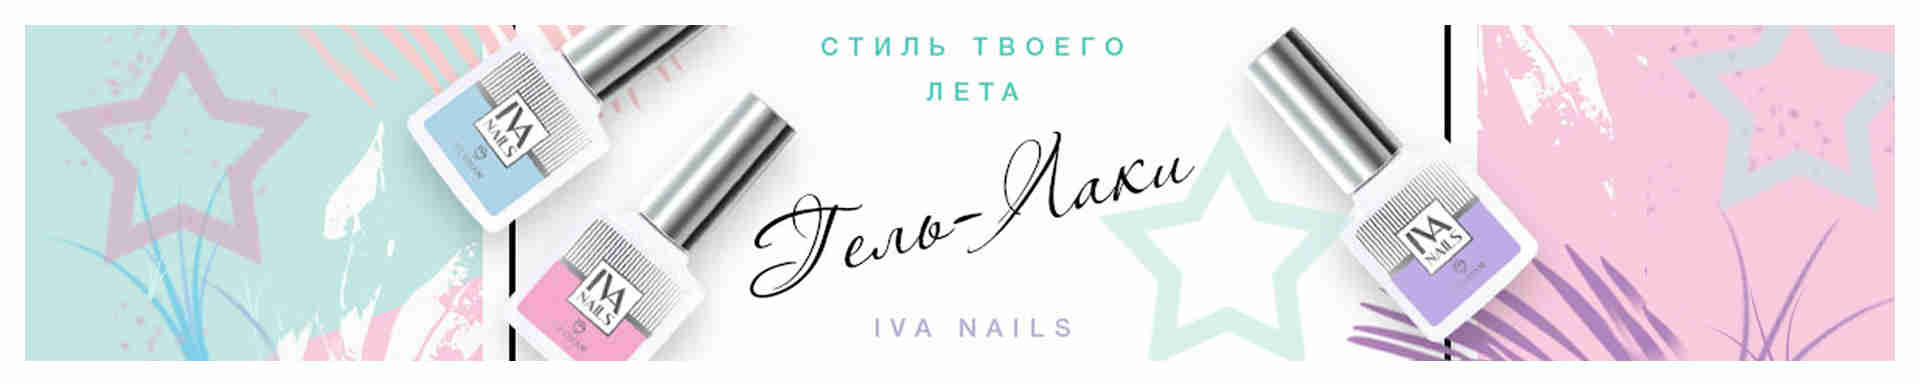 Гель лаки IVA Nails в продаже